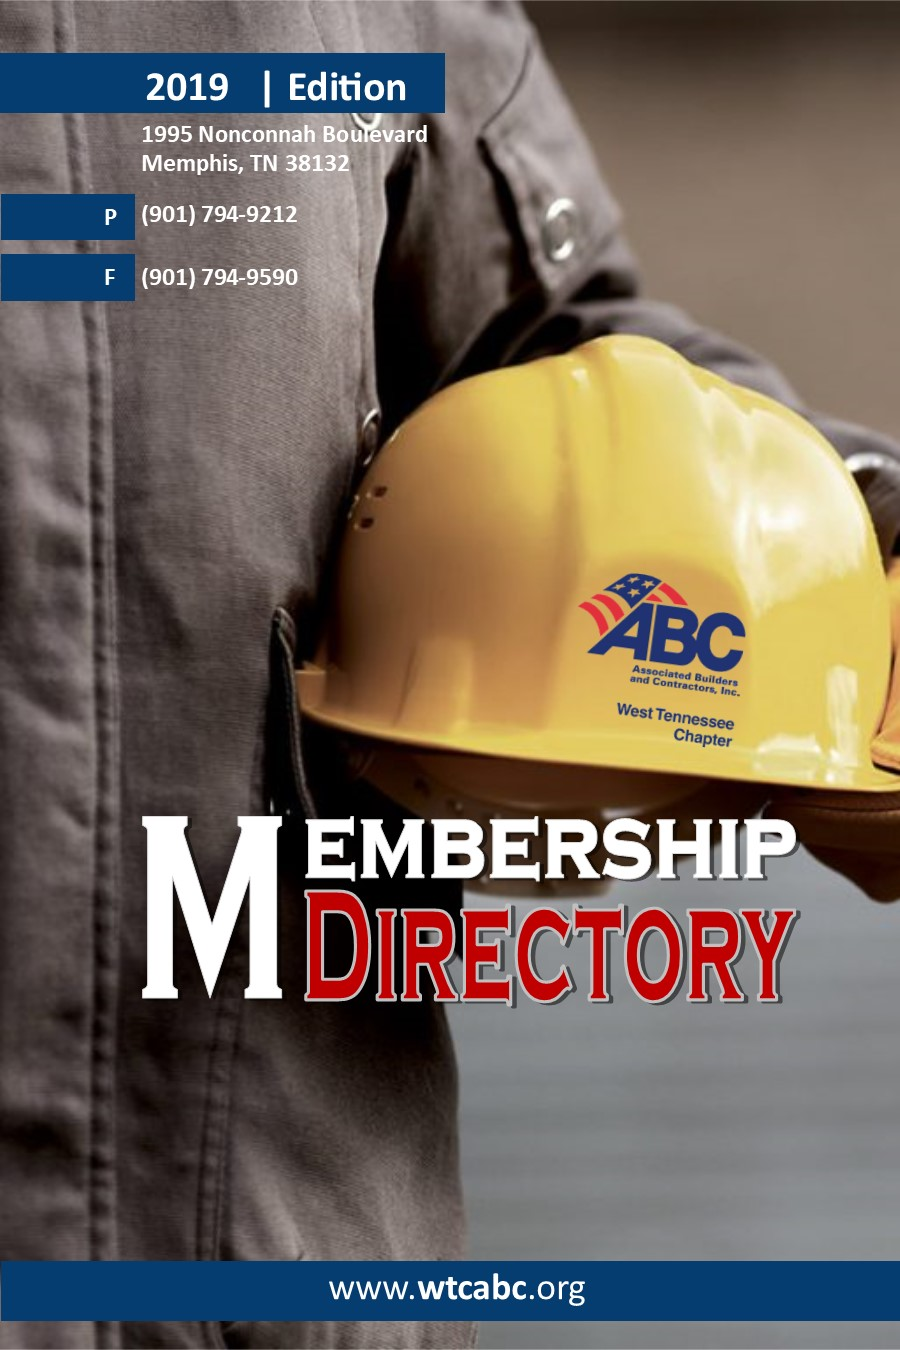 WTCABC 2019 Directory Cover TO PRINT